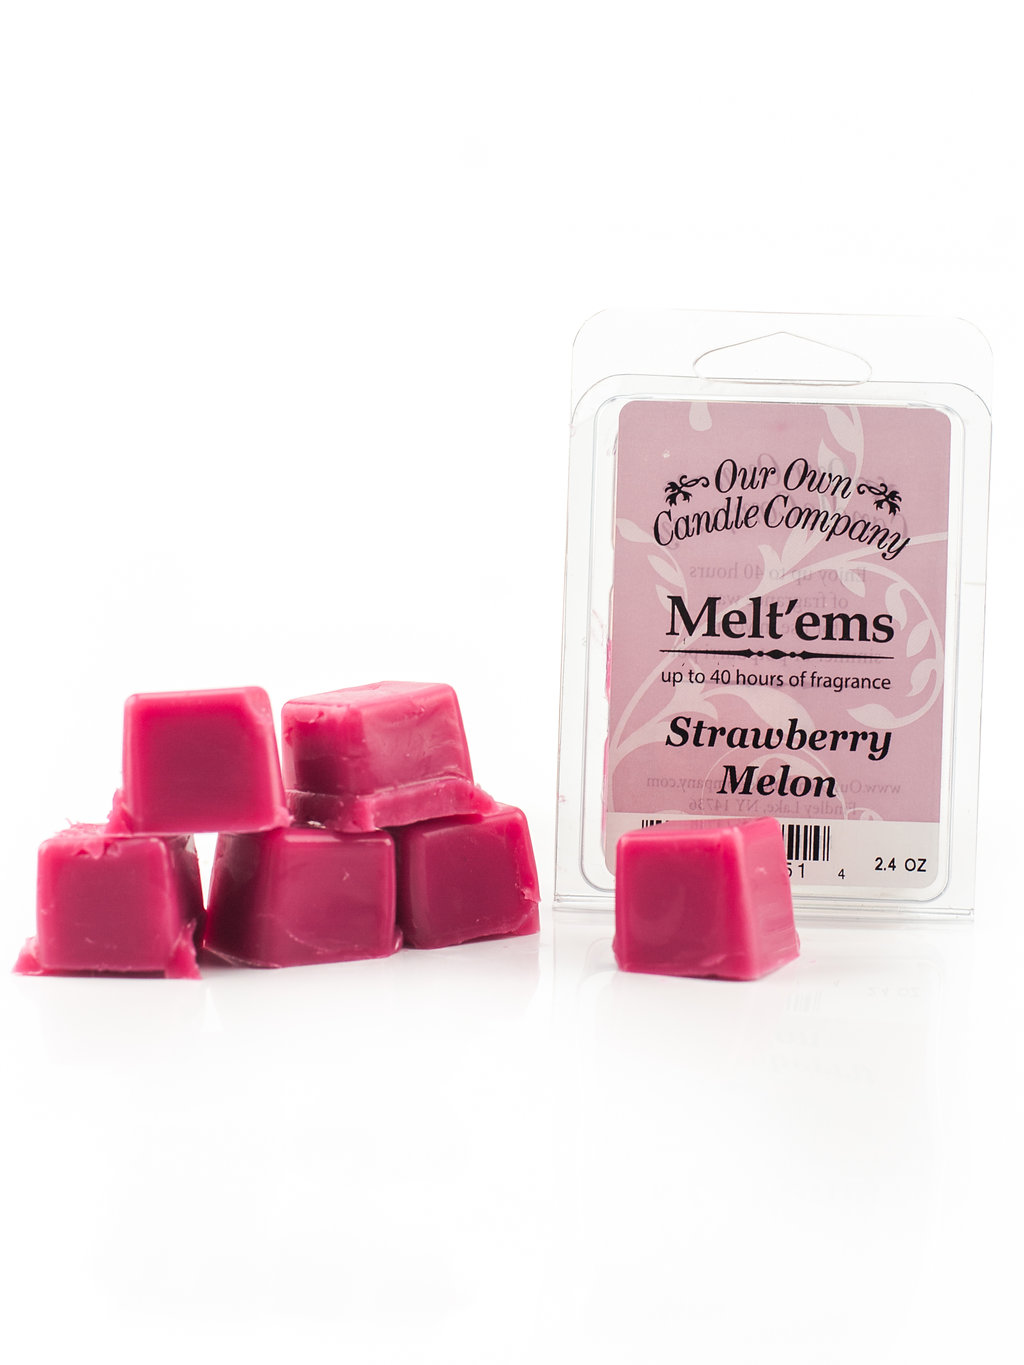 STRAWBERRY MELON MELT 6 CUBE 2.4 OZ UPC# 813542021514